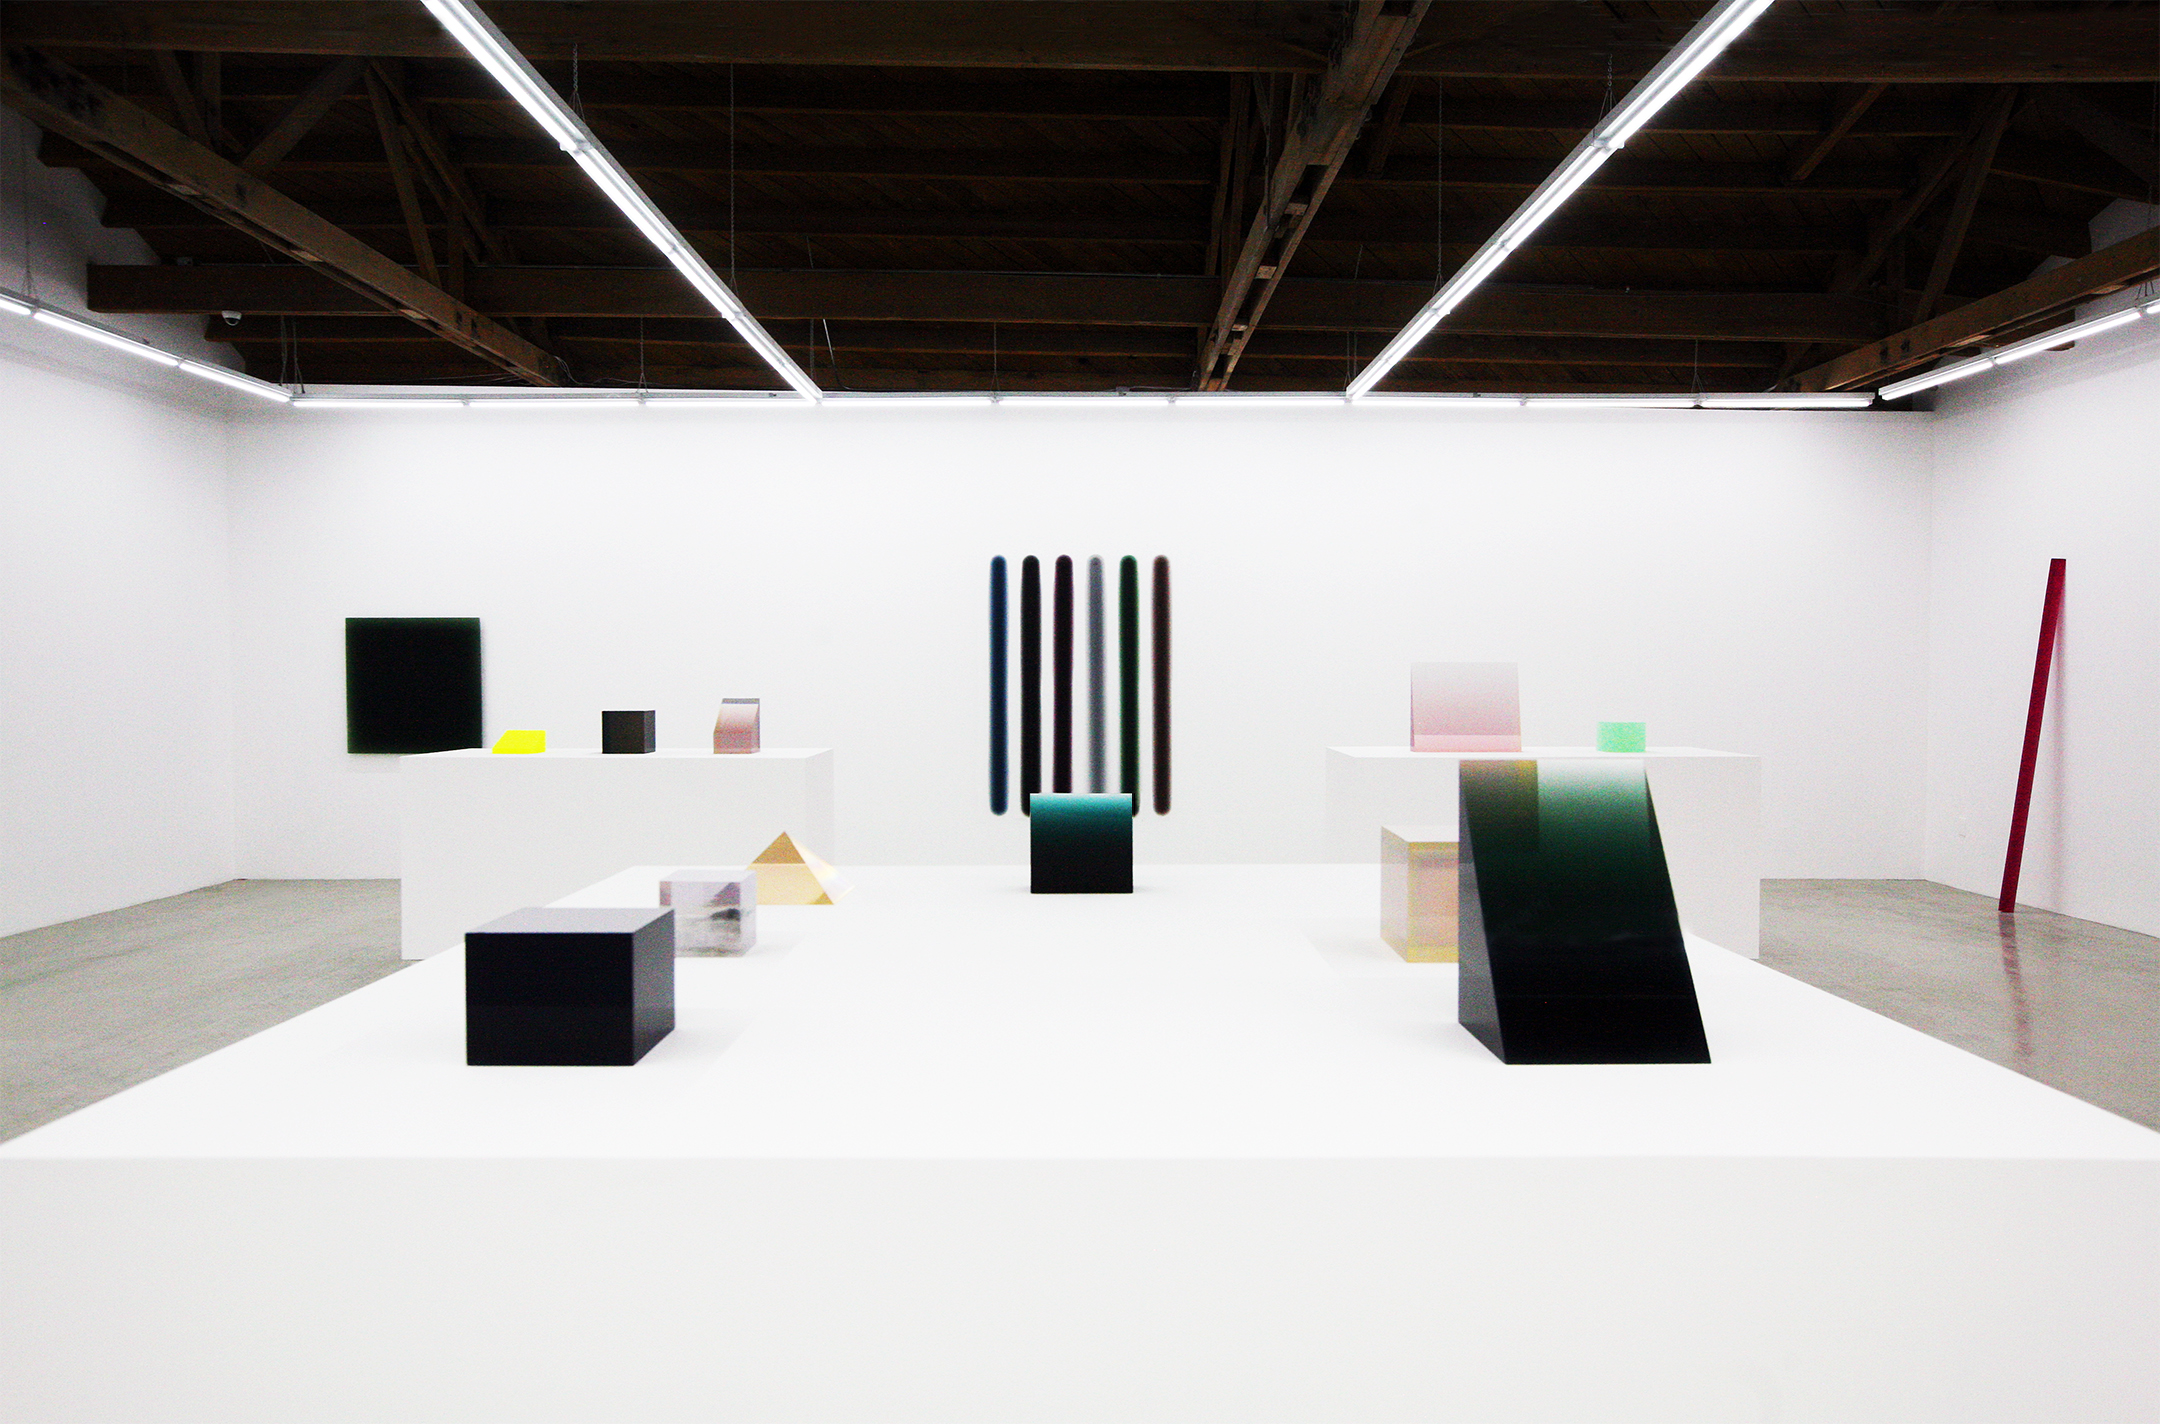 Installation view of Peter Alexander's geometric resin sculptures in various translucent colors